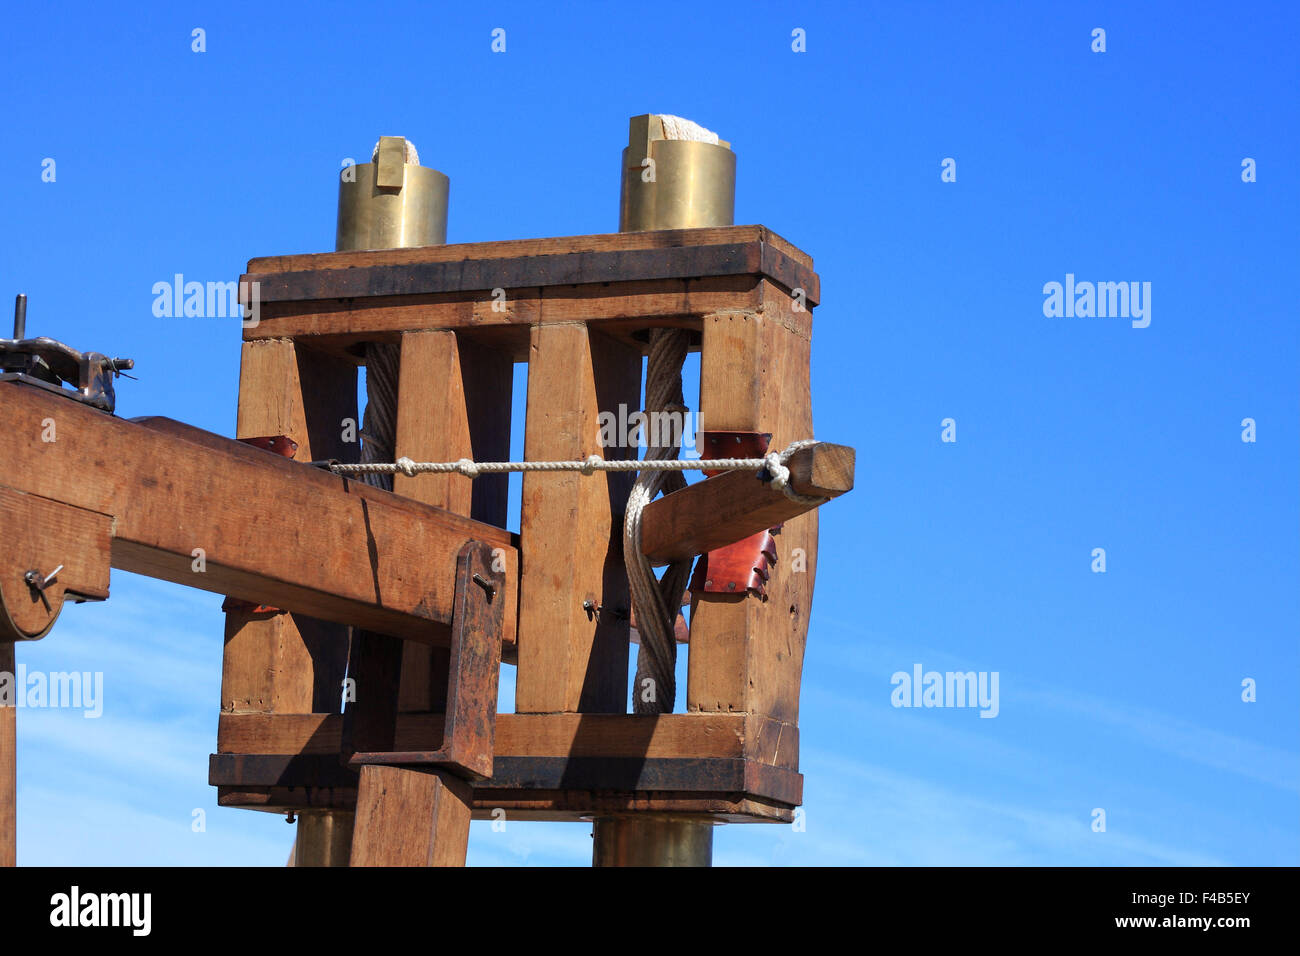 la catapulte banque d'images, photo stock: 88756275 - alamy